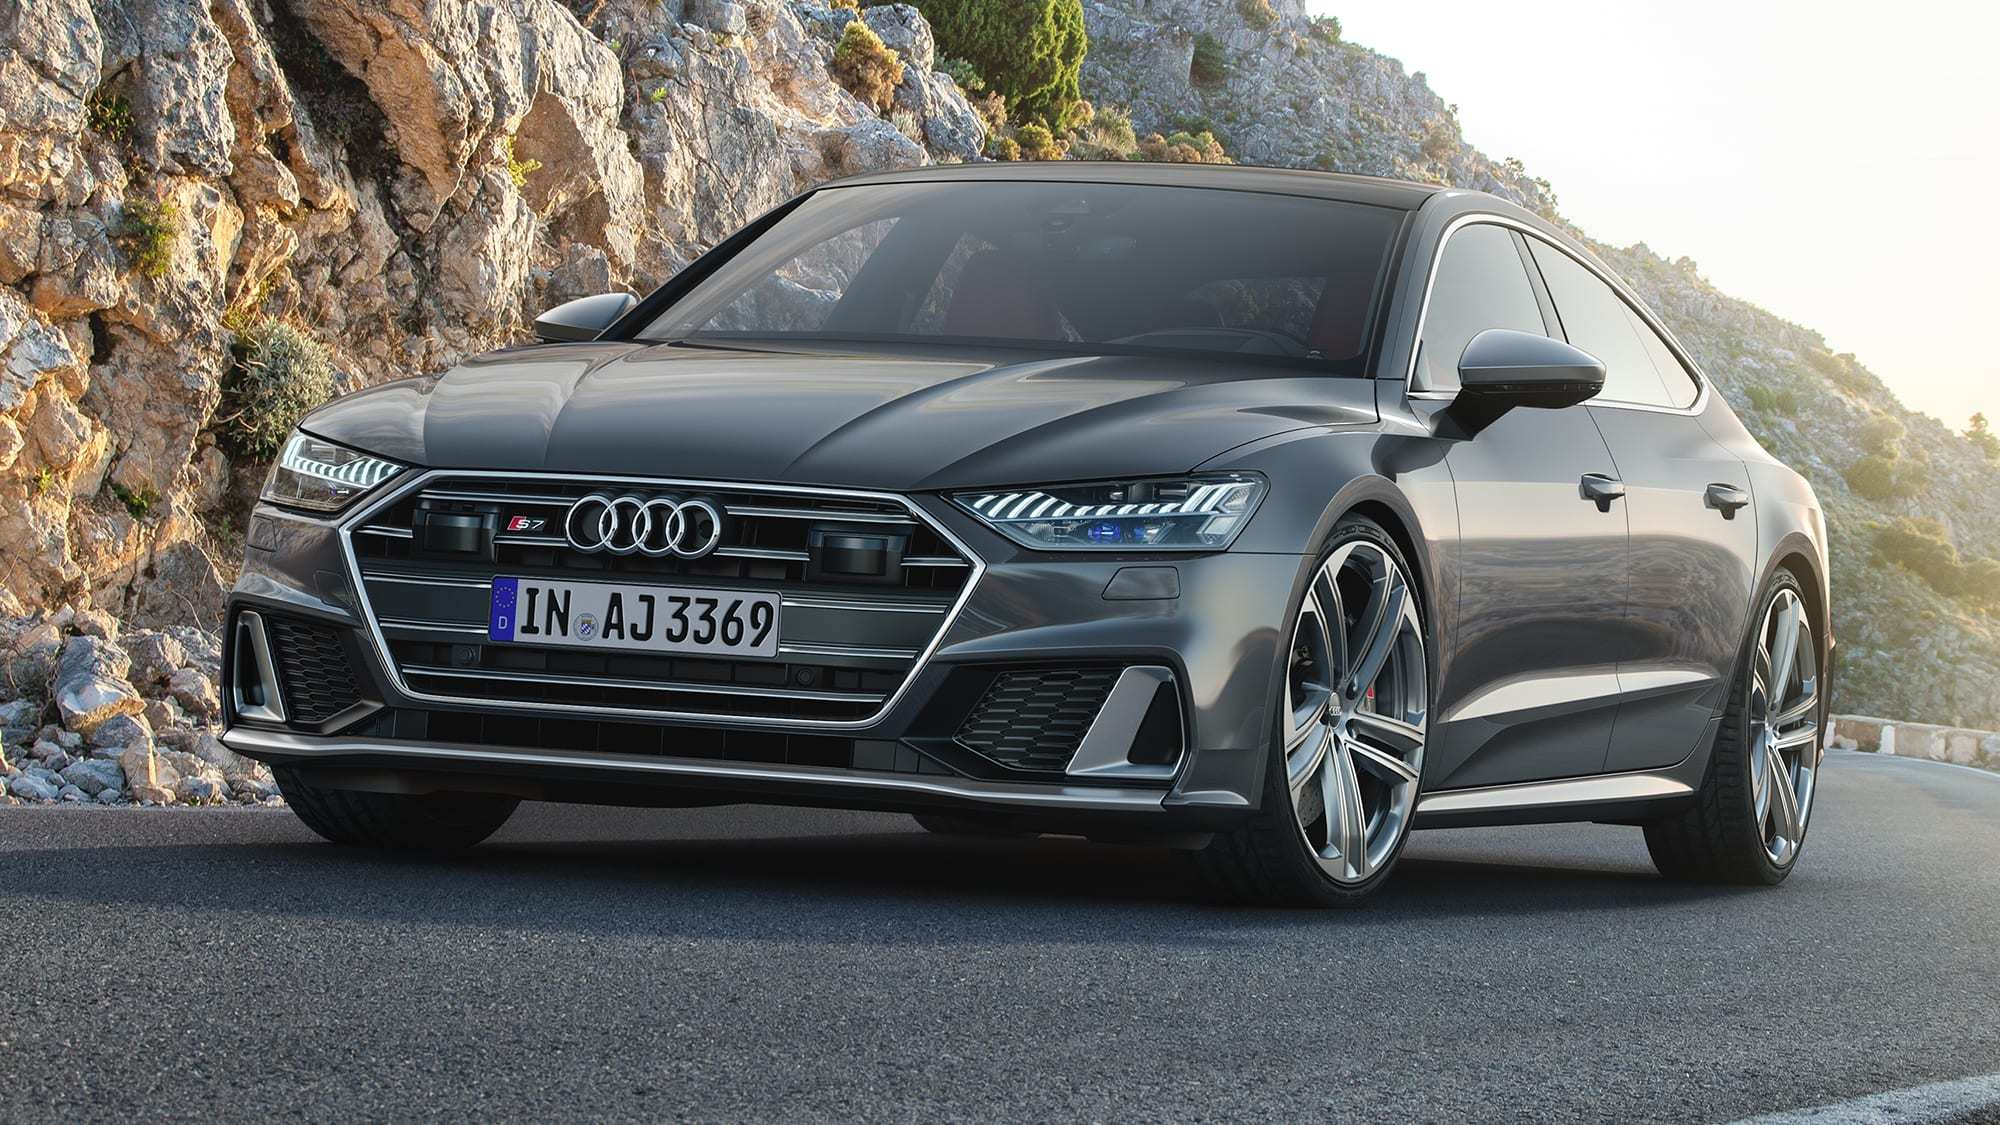 49 All New 2020 Audi S7 Style